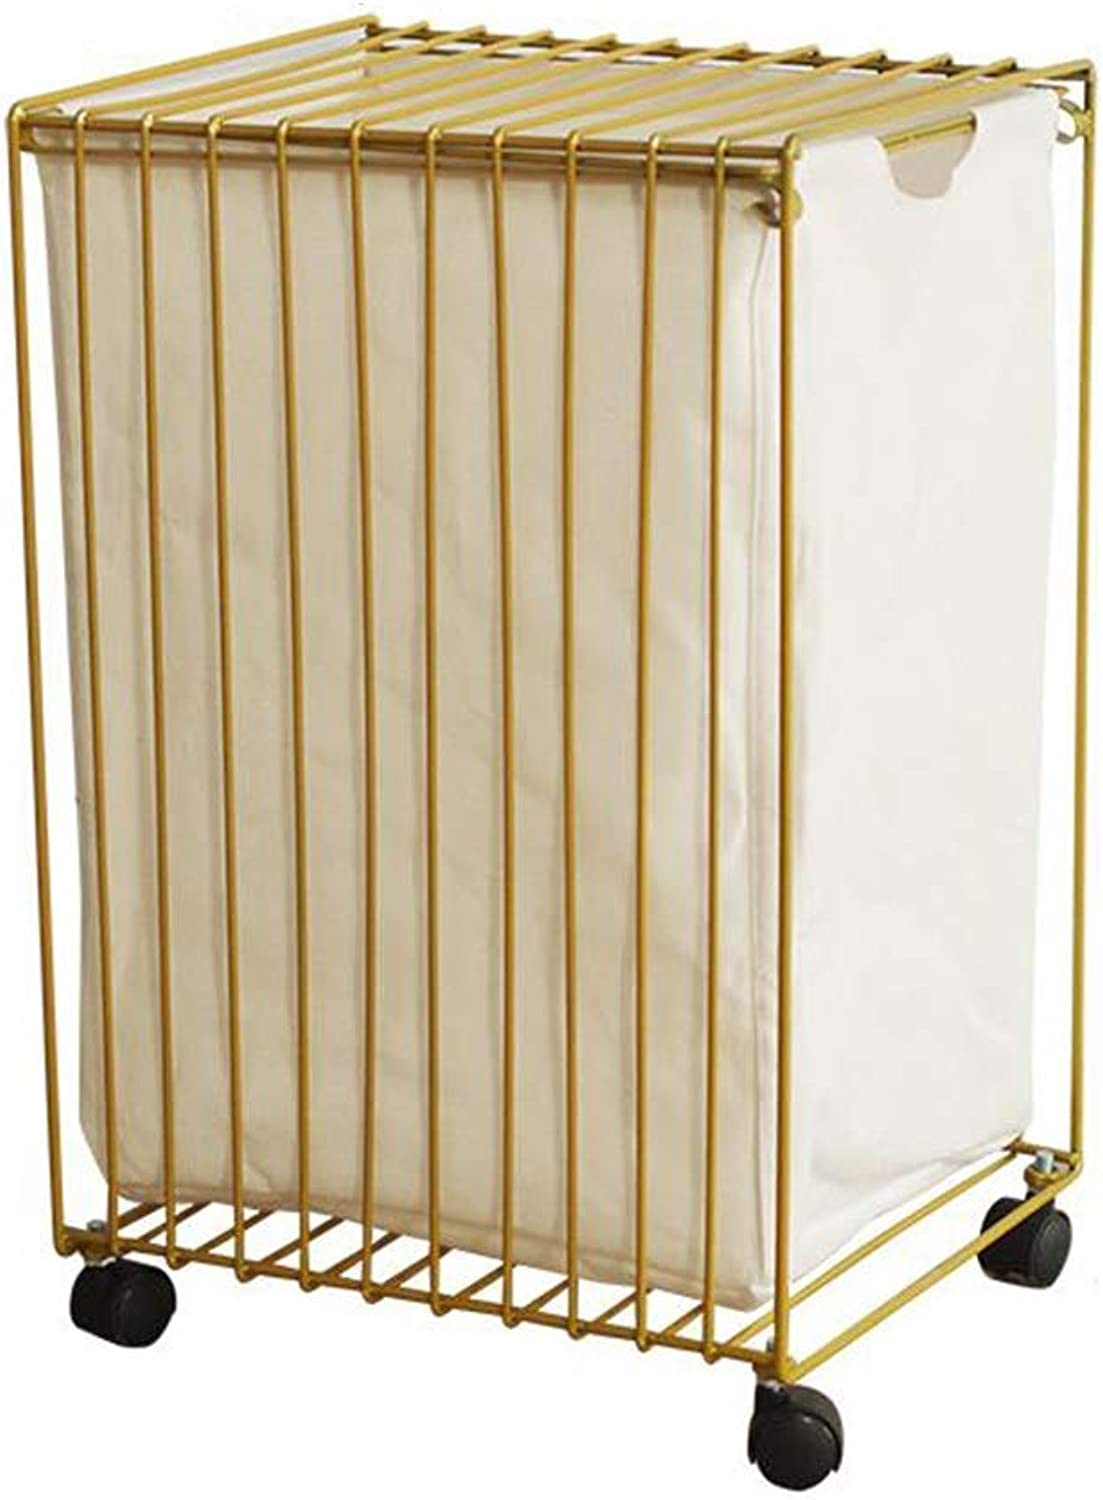 ZDNALS Wrought Iron Hamper Wheeled Laundry Basket Storage Basket Storage Basket Storage Basket (color   gold)